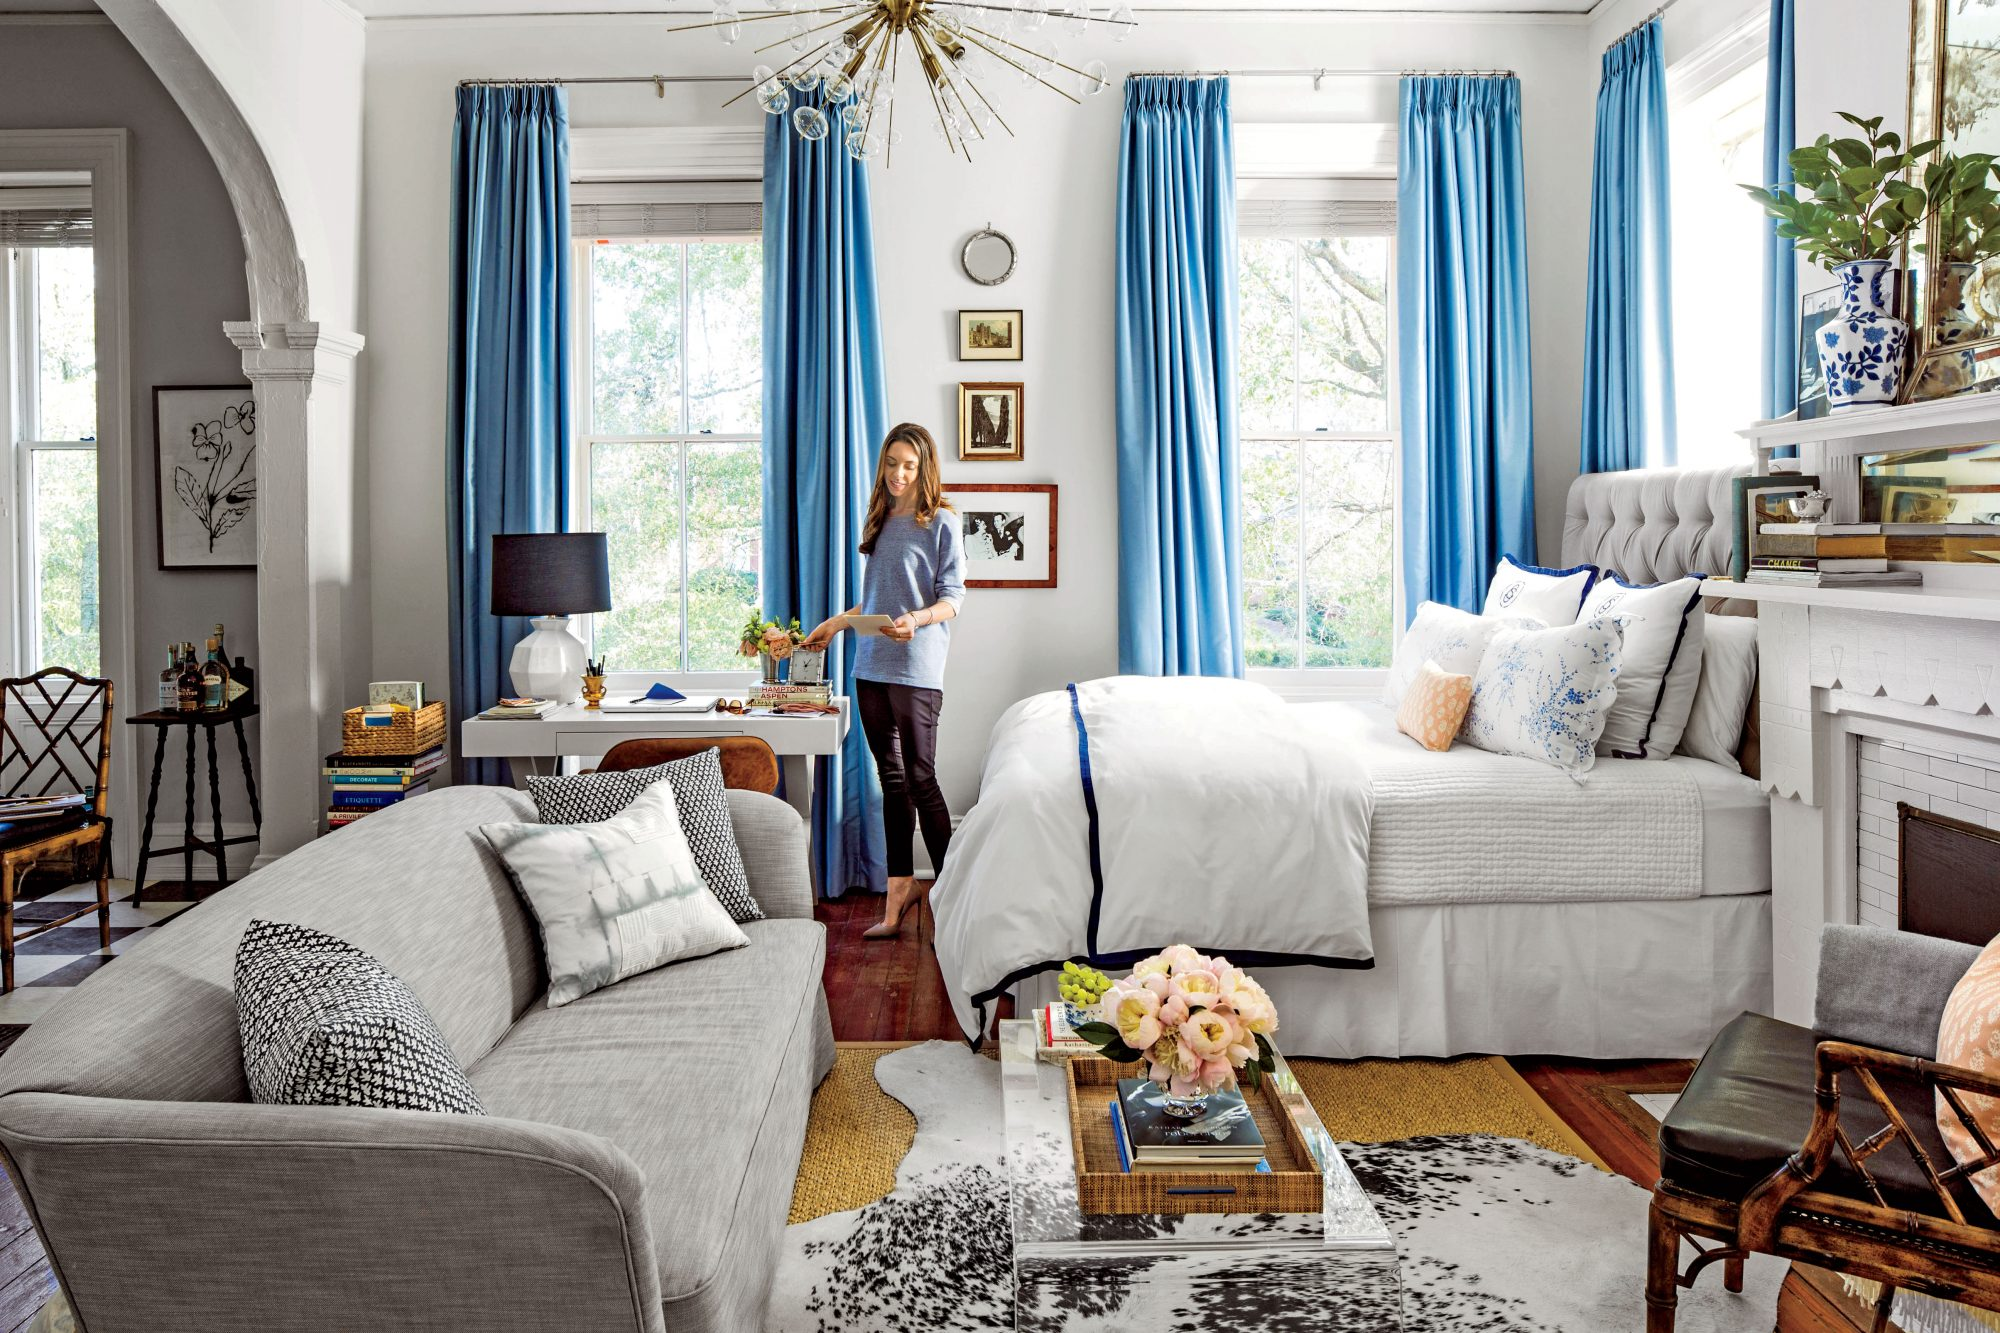 Studio apartment living room and bed with white walls and blue accents